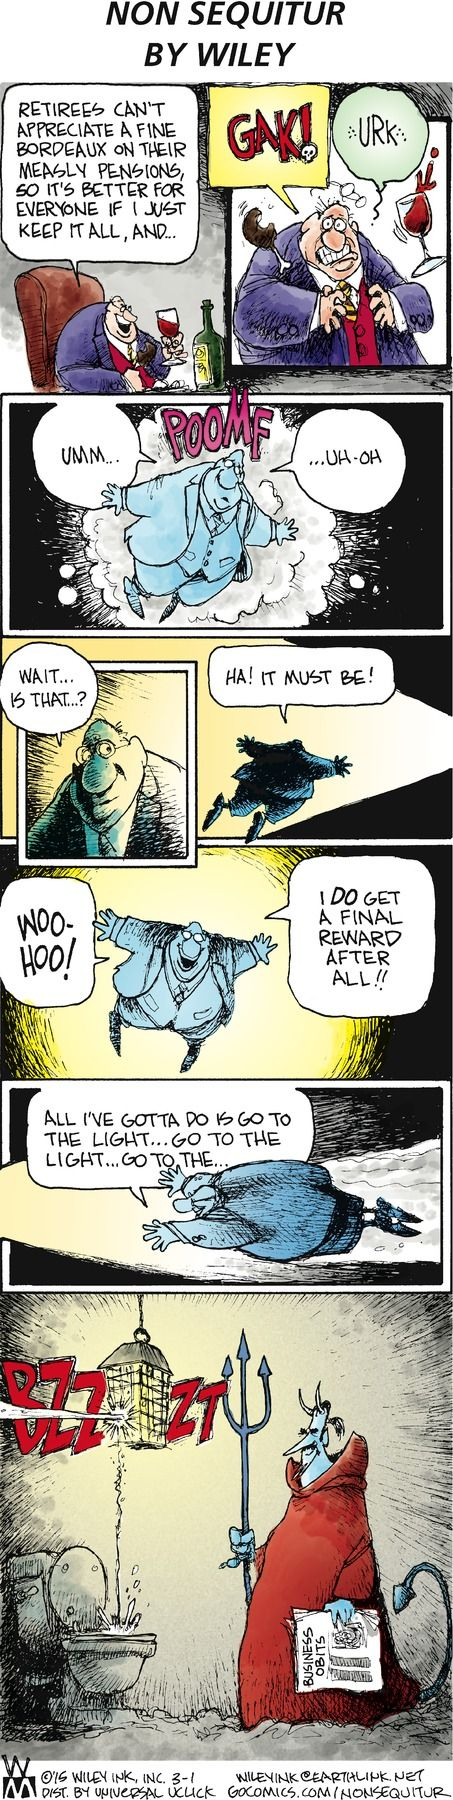 ❤ =^..^= ❤   Non Sequitur Comic Strip on GoComics.com